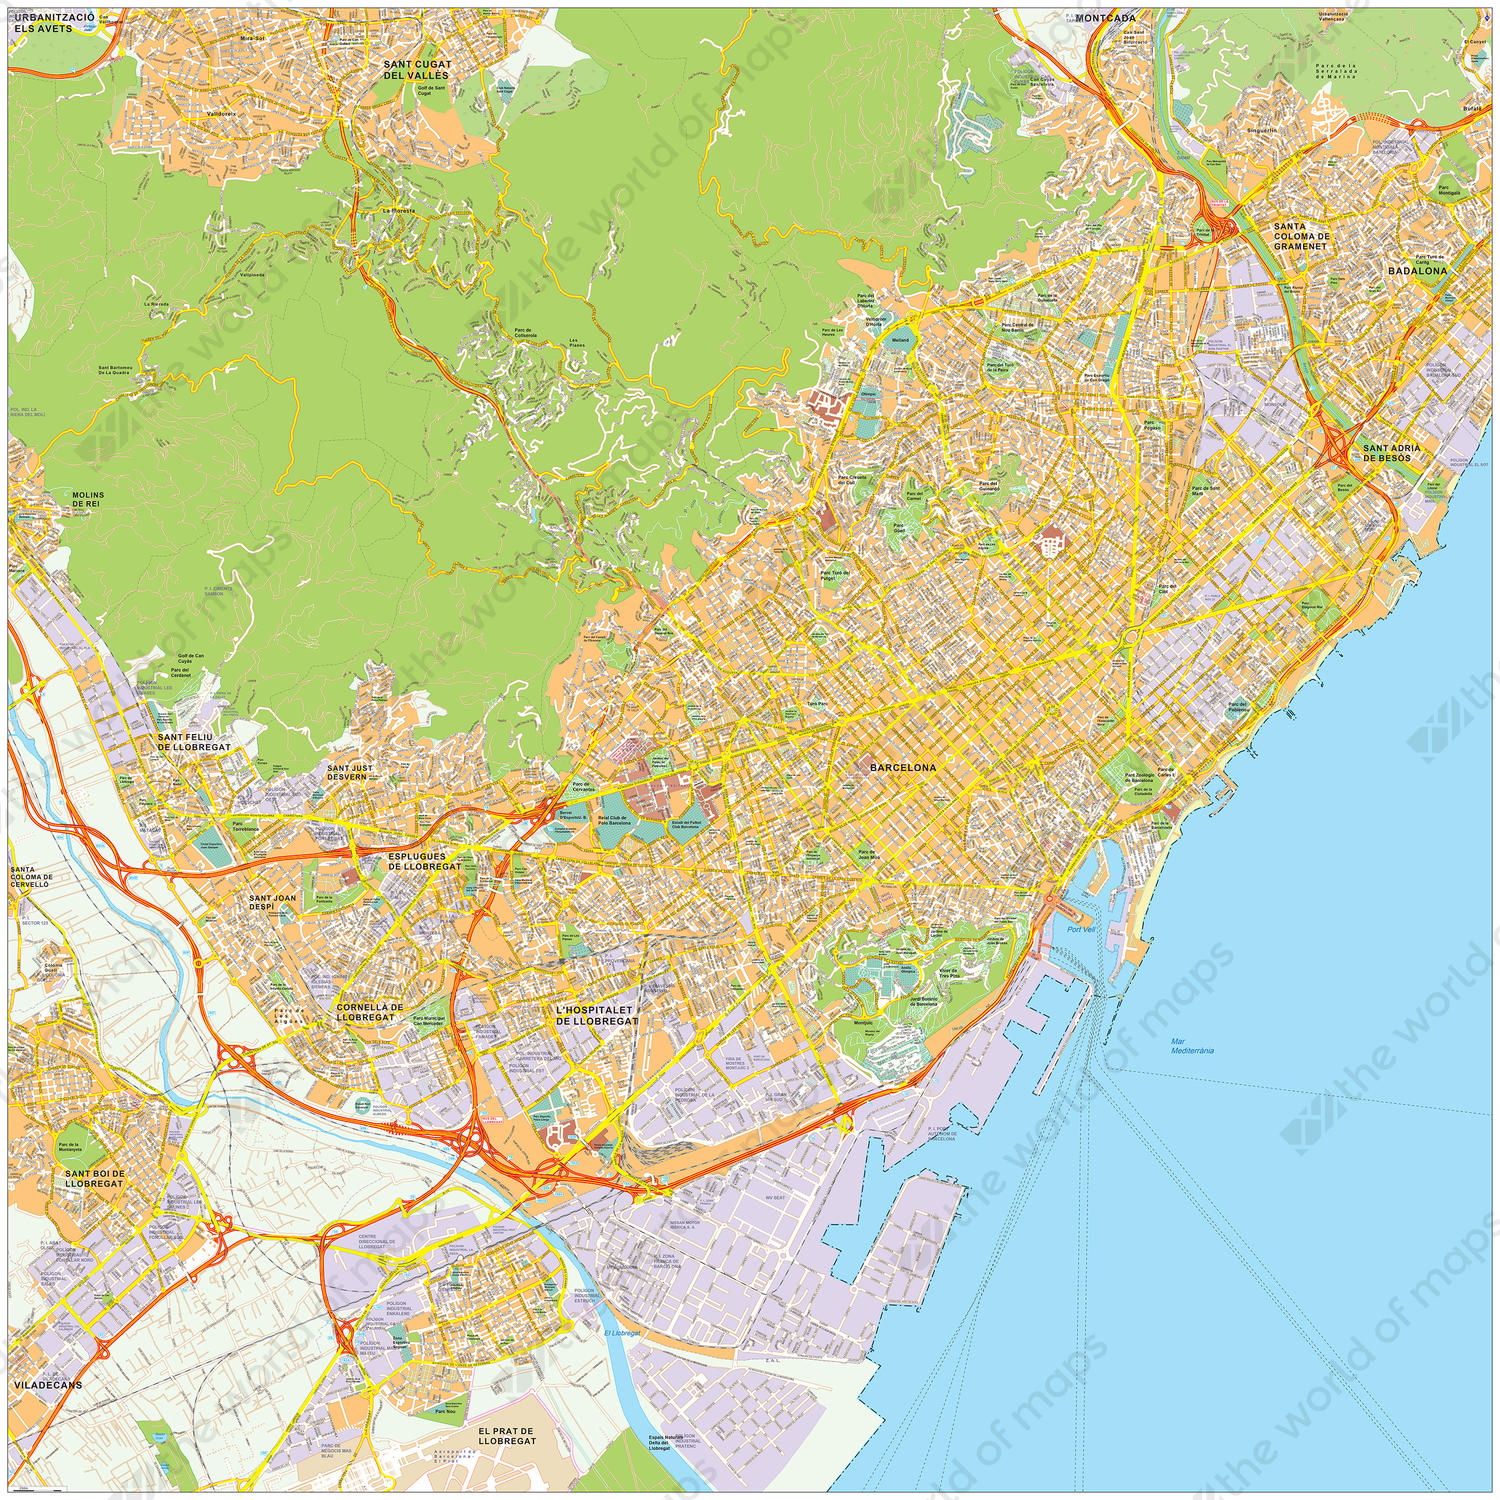 Digital City Map Barcelona 467 The World Of Maps Com